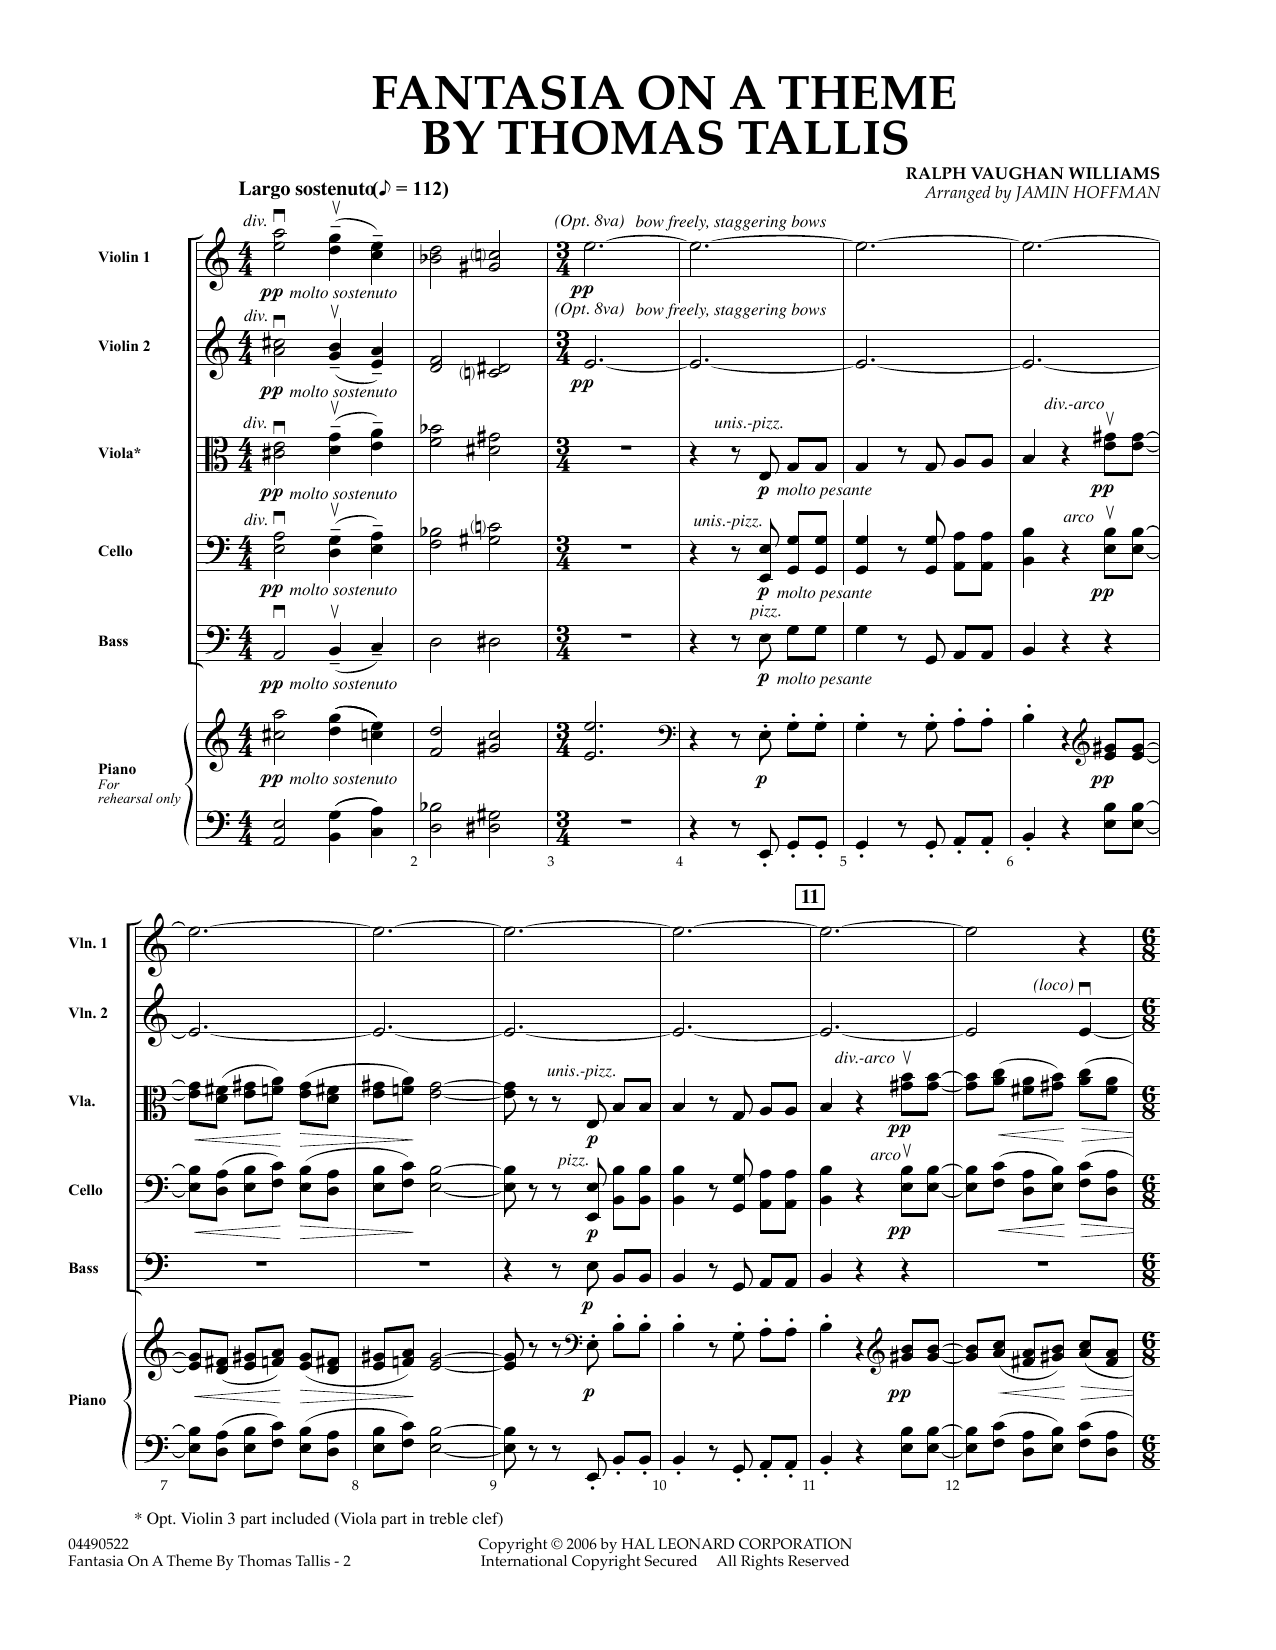 Fantasia on a Theme by Thomas Tallis (COMPLETE) sheet music for orchestra by Vaughan Williams